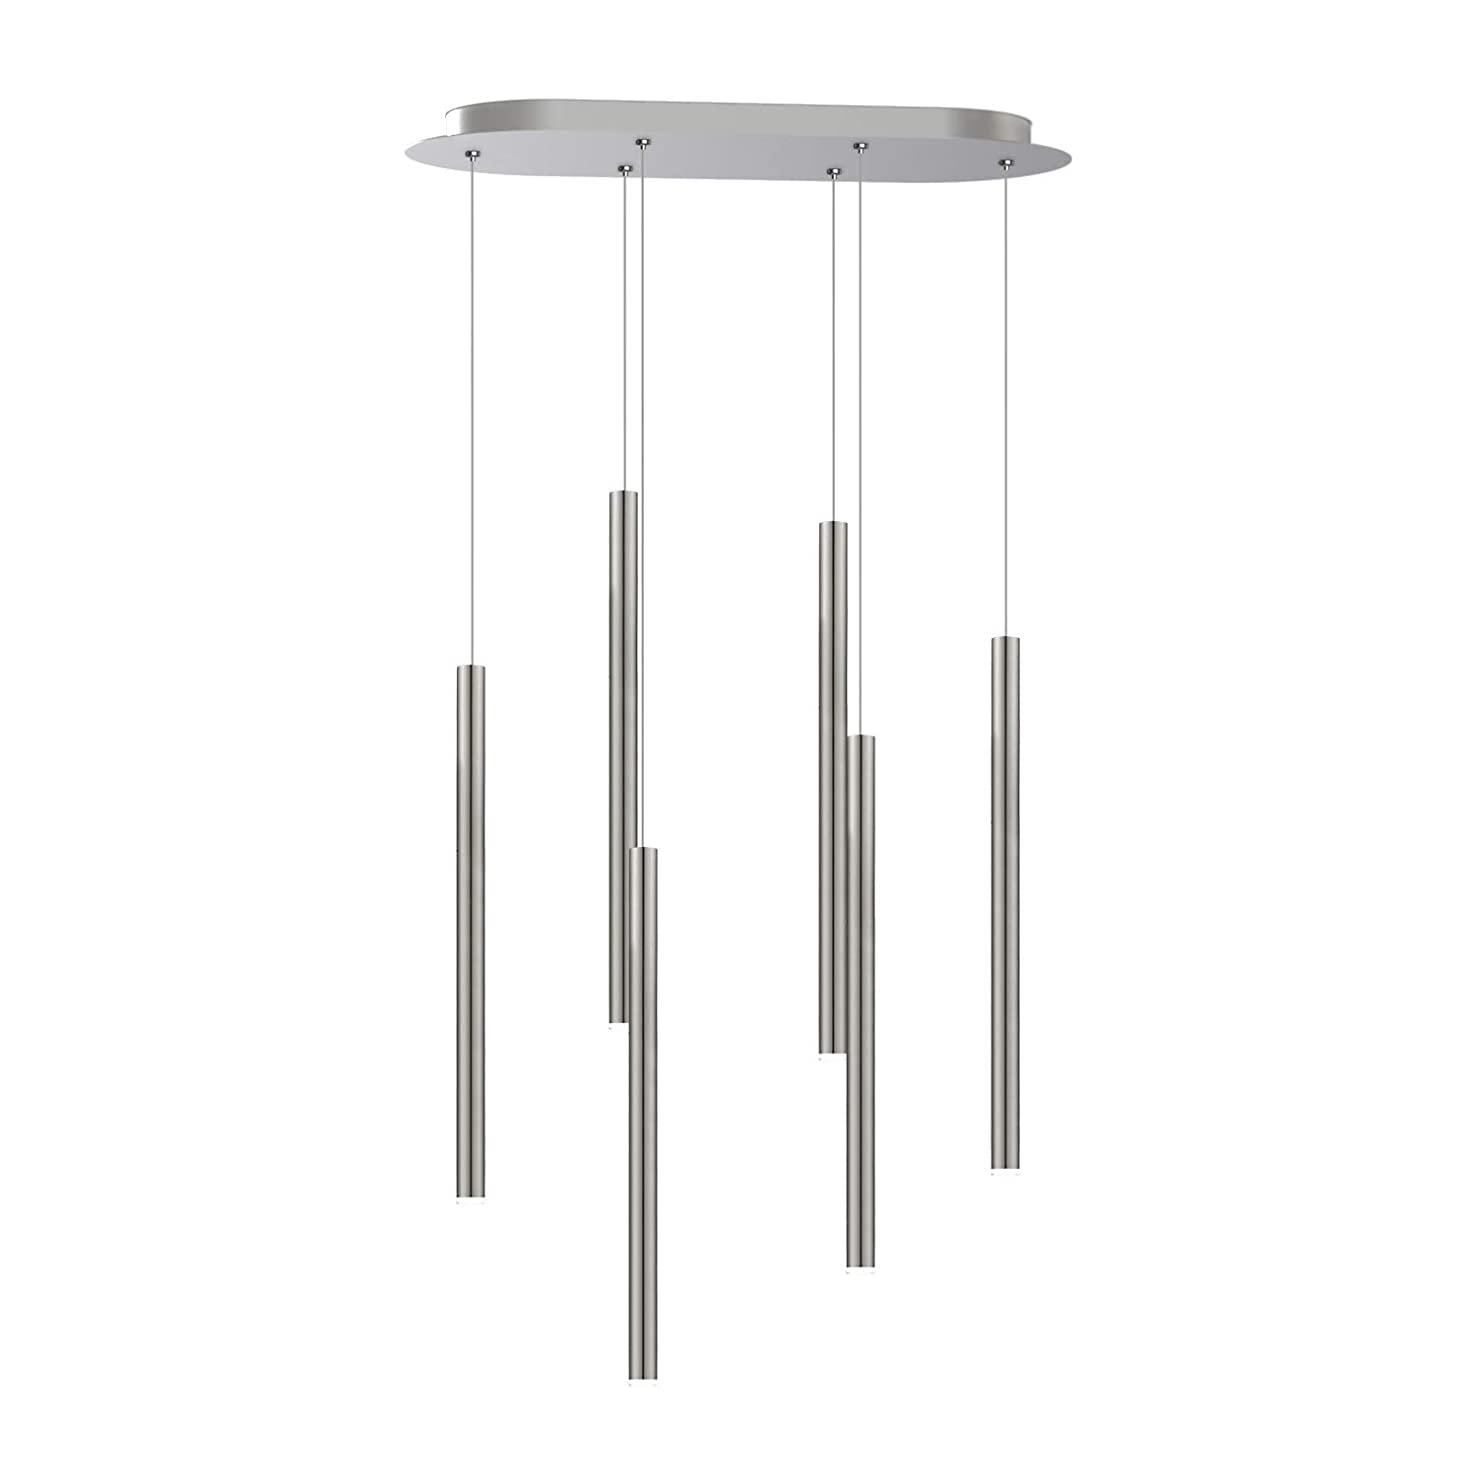 6 Pendant Lighting nickel - LED Hanging Light Fixture for Kitchen Island, Bar, Foyer - Equilateral Cluster of Mini Metal Rod pipe Tube Cylinders - Dimmable, Adjustable Wire, Lamp Bulb Included